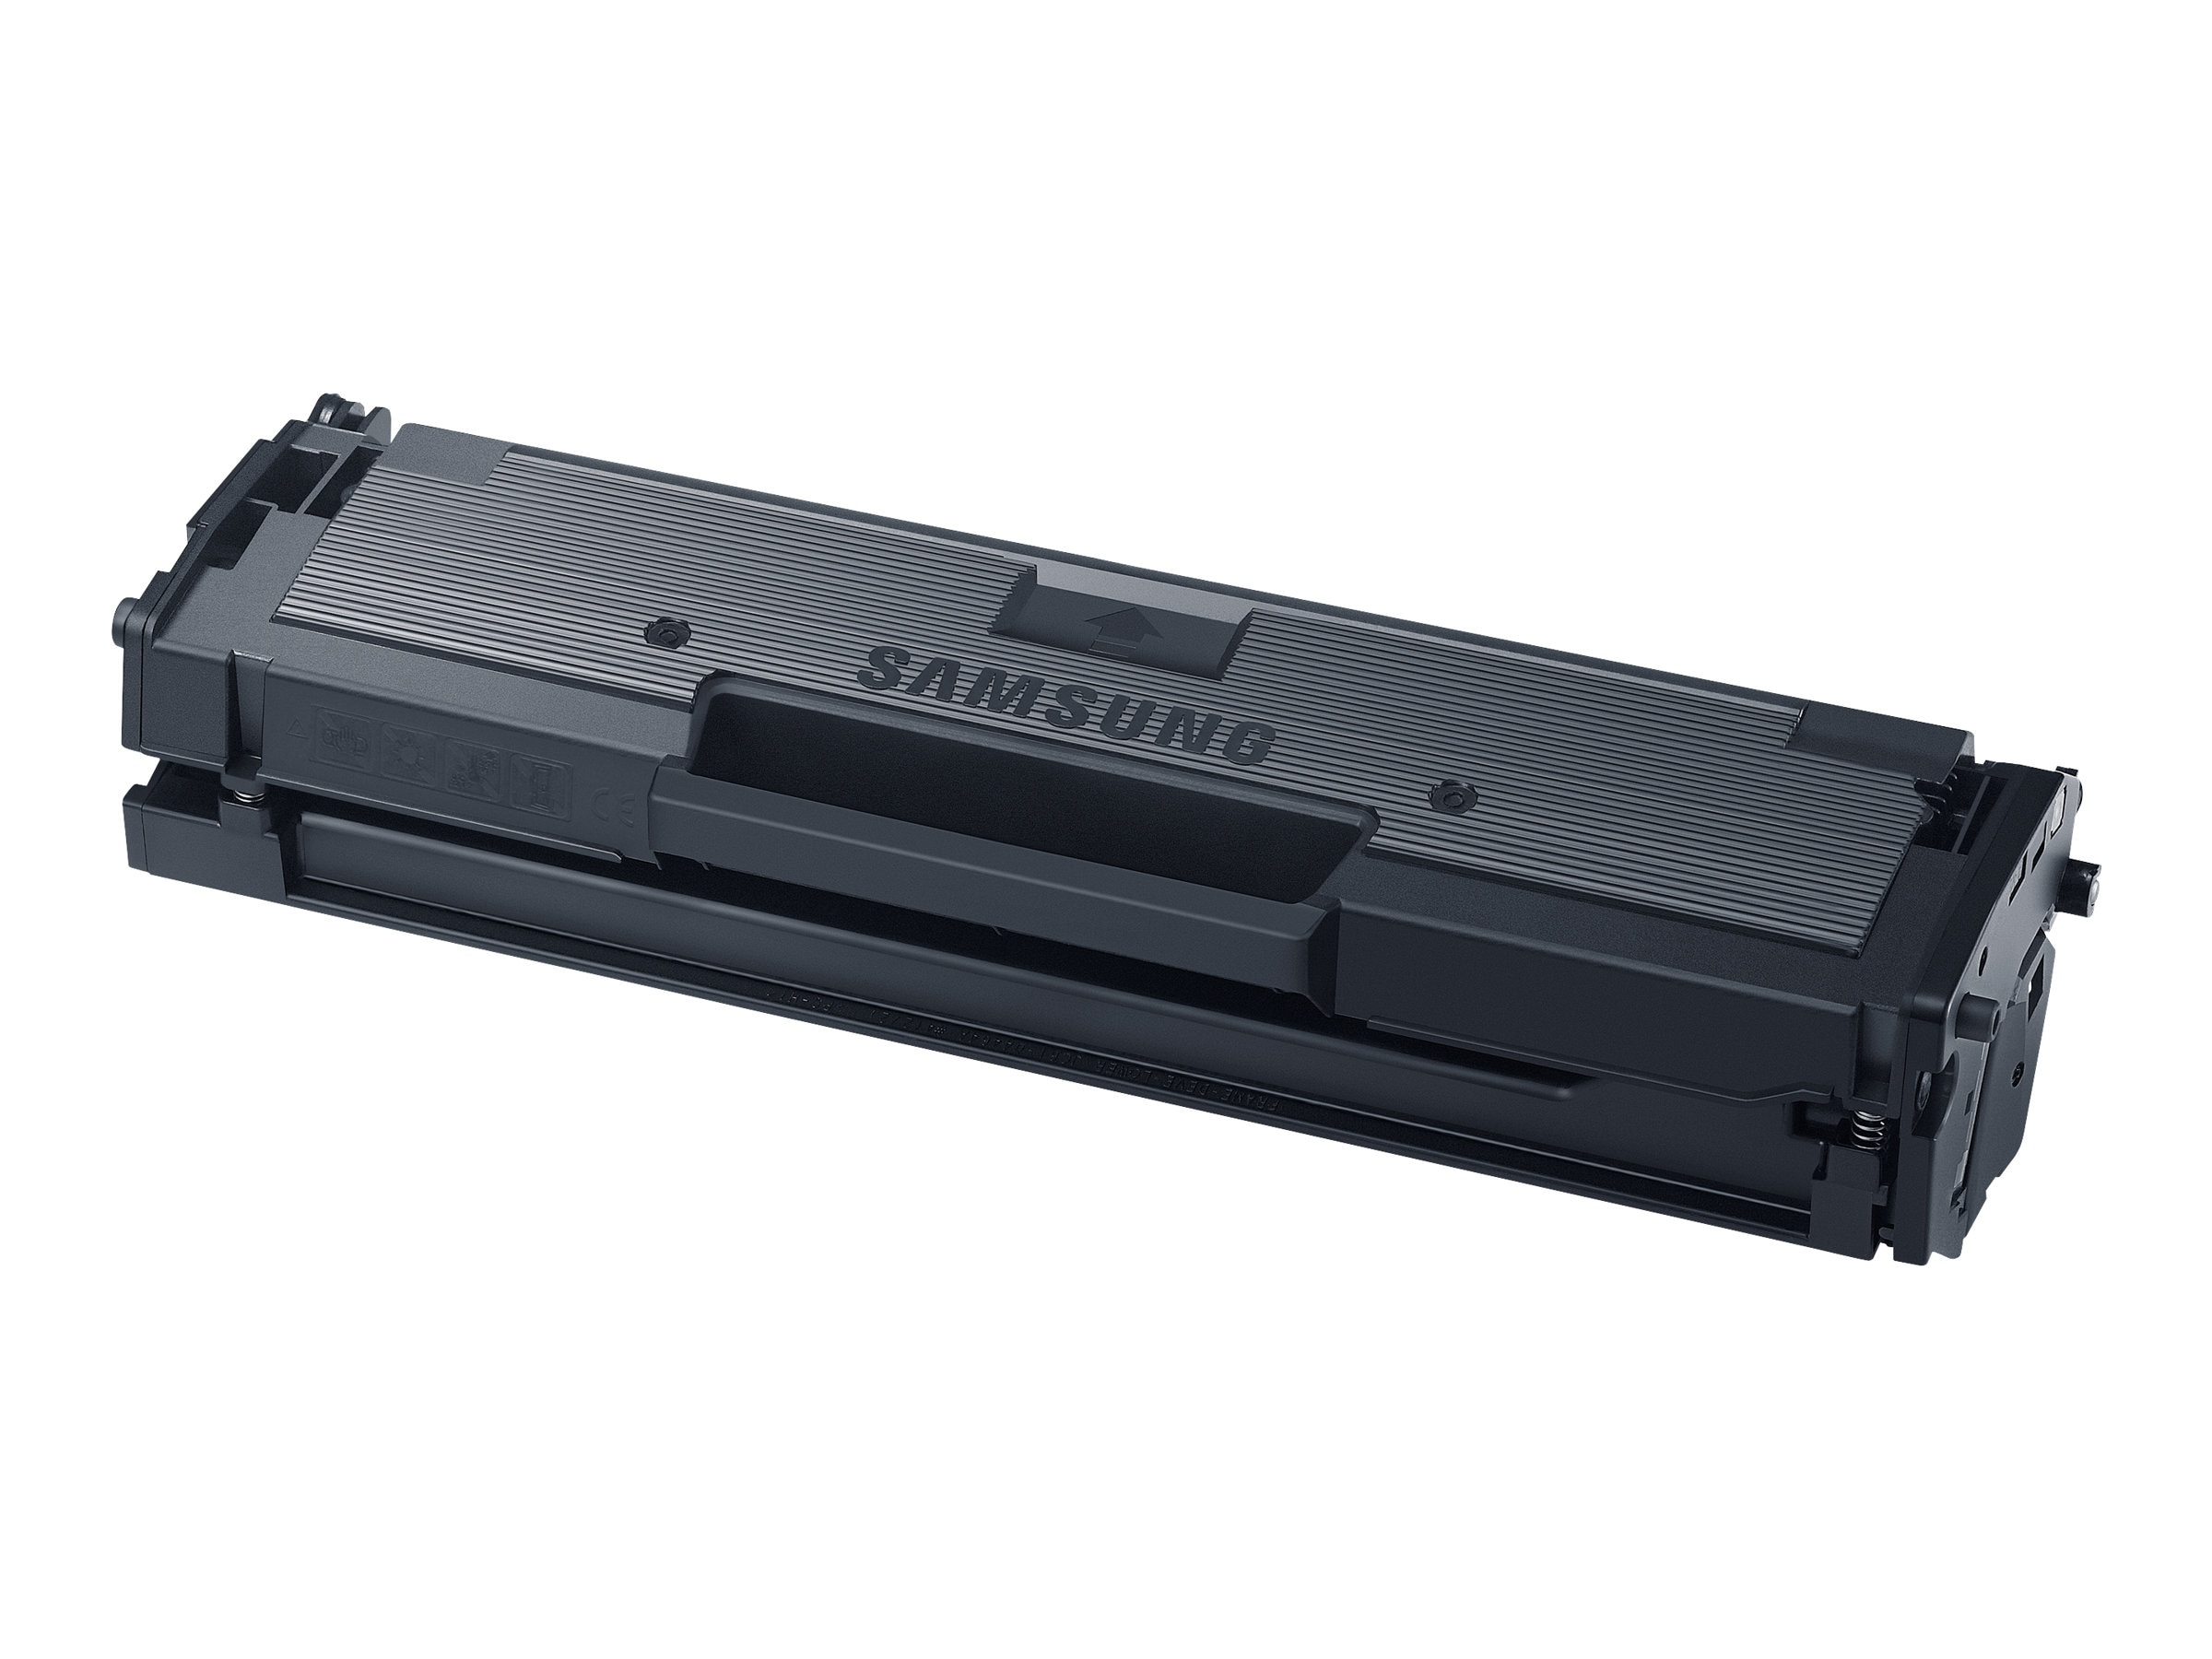 Samsung Black Standard Yield Toner Cartridge for Xpress M2022, Xpress M2022W, Xpress M2020, Xpress M2021